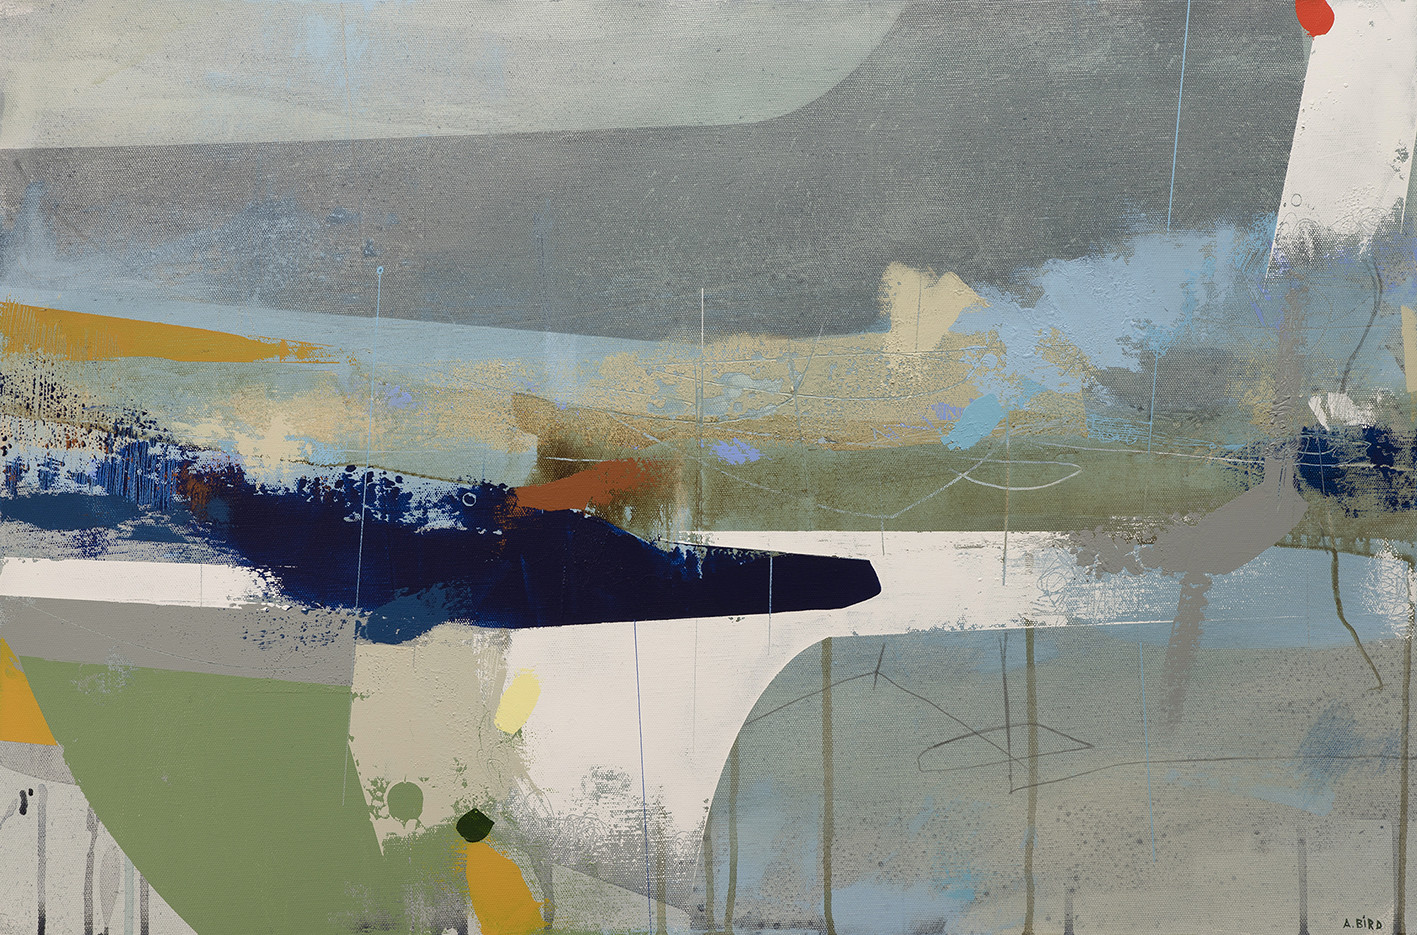 <span class=&#34;link fancybox-details-link&#34;><a href=&#34;/artists/77-andrew-bird/works/6198-andrew-bird-inconstant-2019/&#34;>View Detail Page</a></span><div class=&#34;artist&#34;><strong>Andrew Bird</strong></div> <div class=&#34;title&#34;><em>Inconstant</em>, 2019</div> <div class=&#34;signed_and_dated&#34;>signed, titled and dated on reverse</div> <div class=&#34;medium&#34;>acrylic on canvas</div> <div class=&#34;dimensions&#34;>h 50.5 x w 76.5 cm<br /> 19 7/8 x 30 1/8 in</div><div class=&#34;price&#34;>£1,600.00</div><div class=&#34;copyright_line&#34;>Own Art: £ 160 x 10 Months, 0% APR</div>